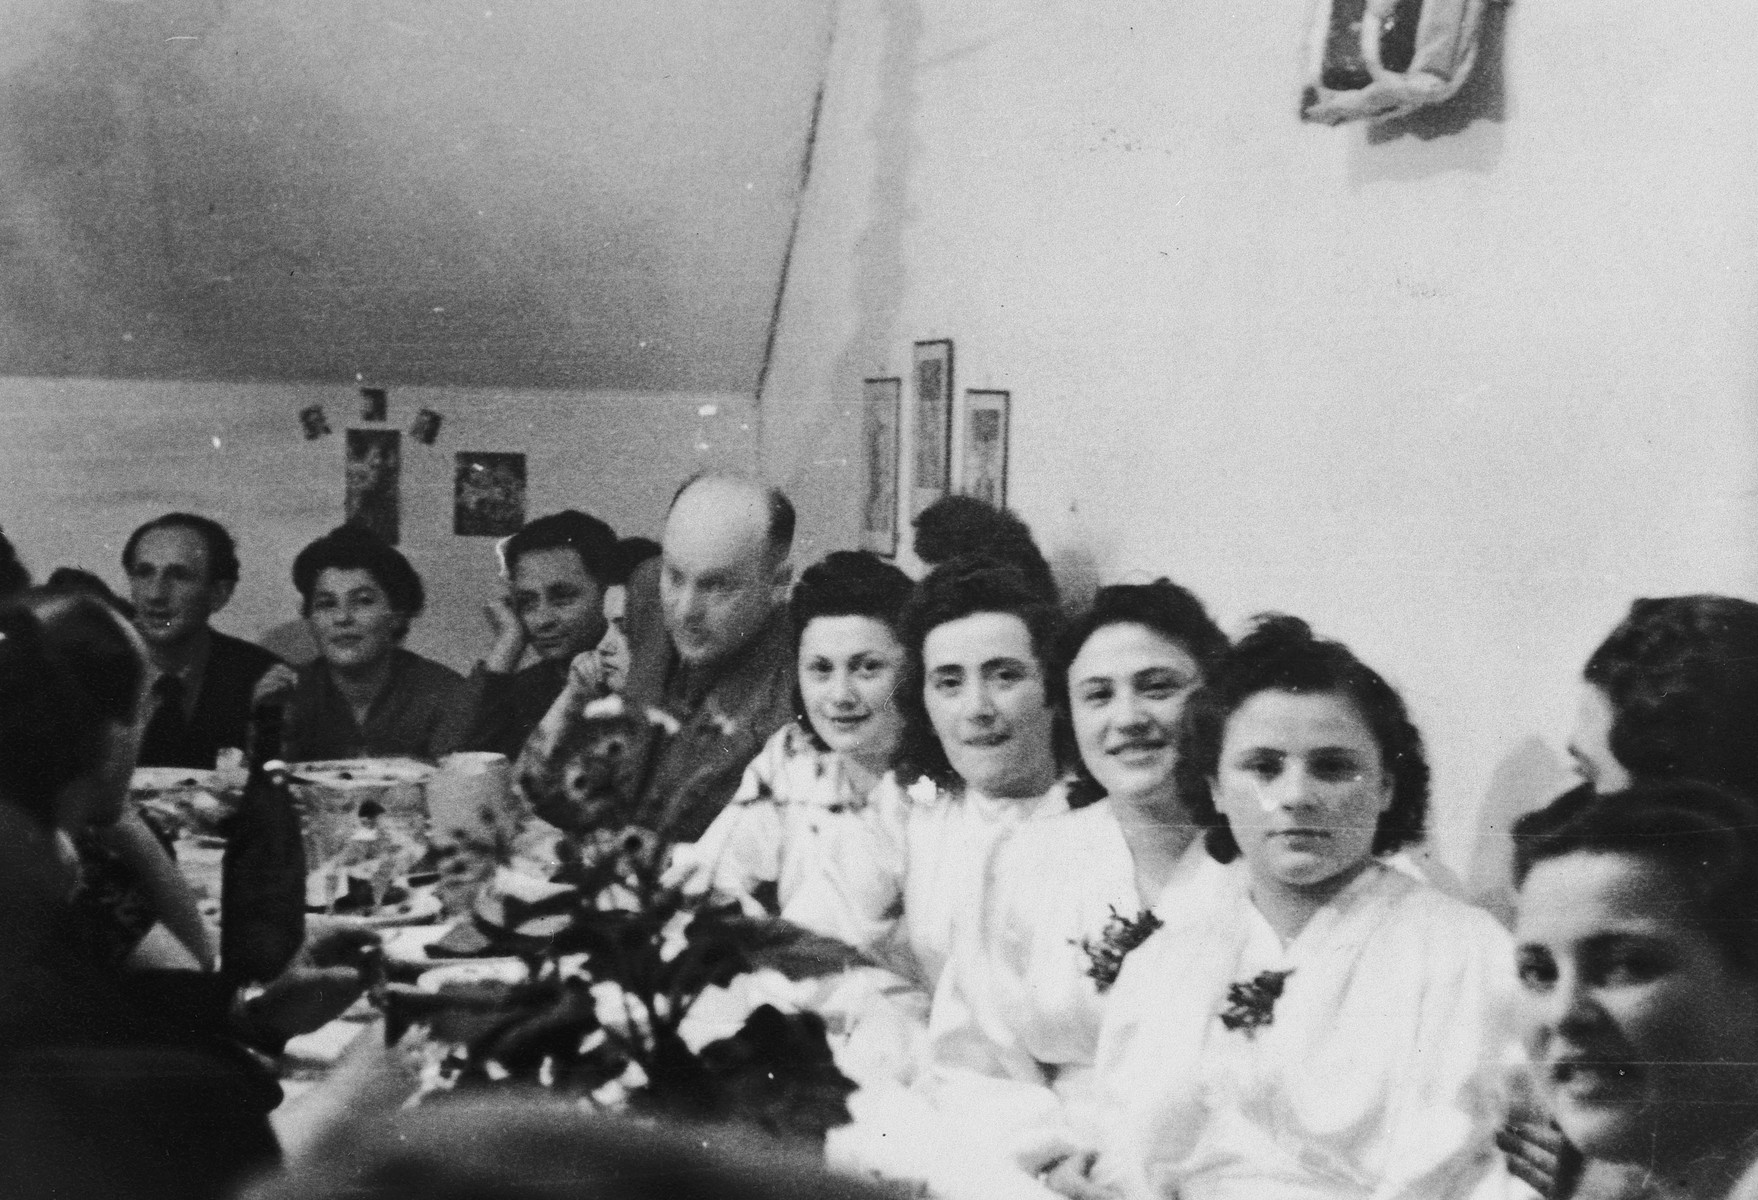 Four brides celebrate their joint wedding in the Foehrenwald displaced persons camp.  Pictured are Eva who married Martin Libitzky, Regina who married Sam Lubka, Sofia who married Felix Lubka and Mariusia who married Moniek Zweibaum.